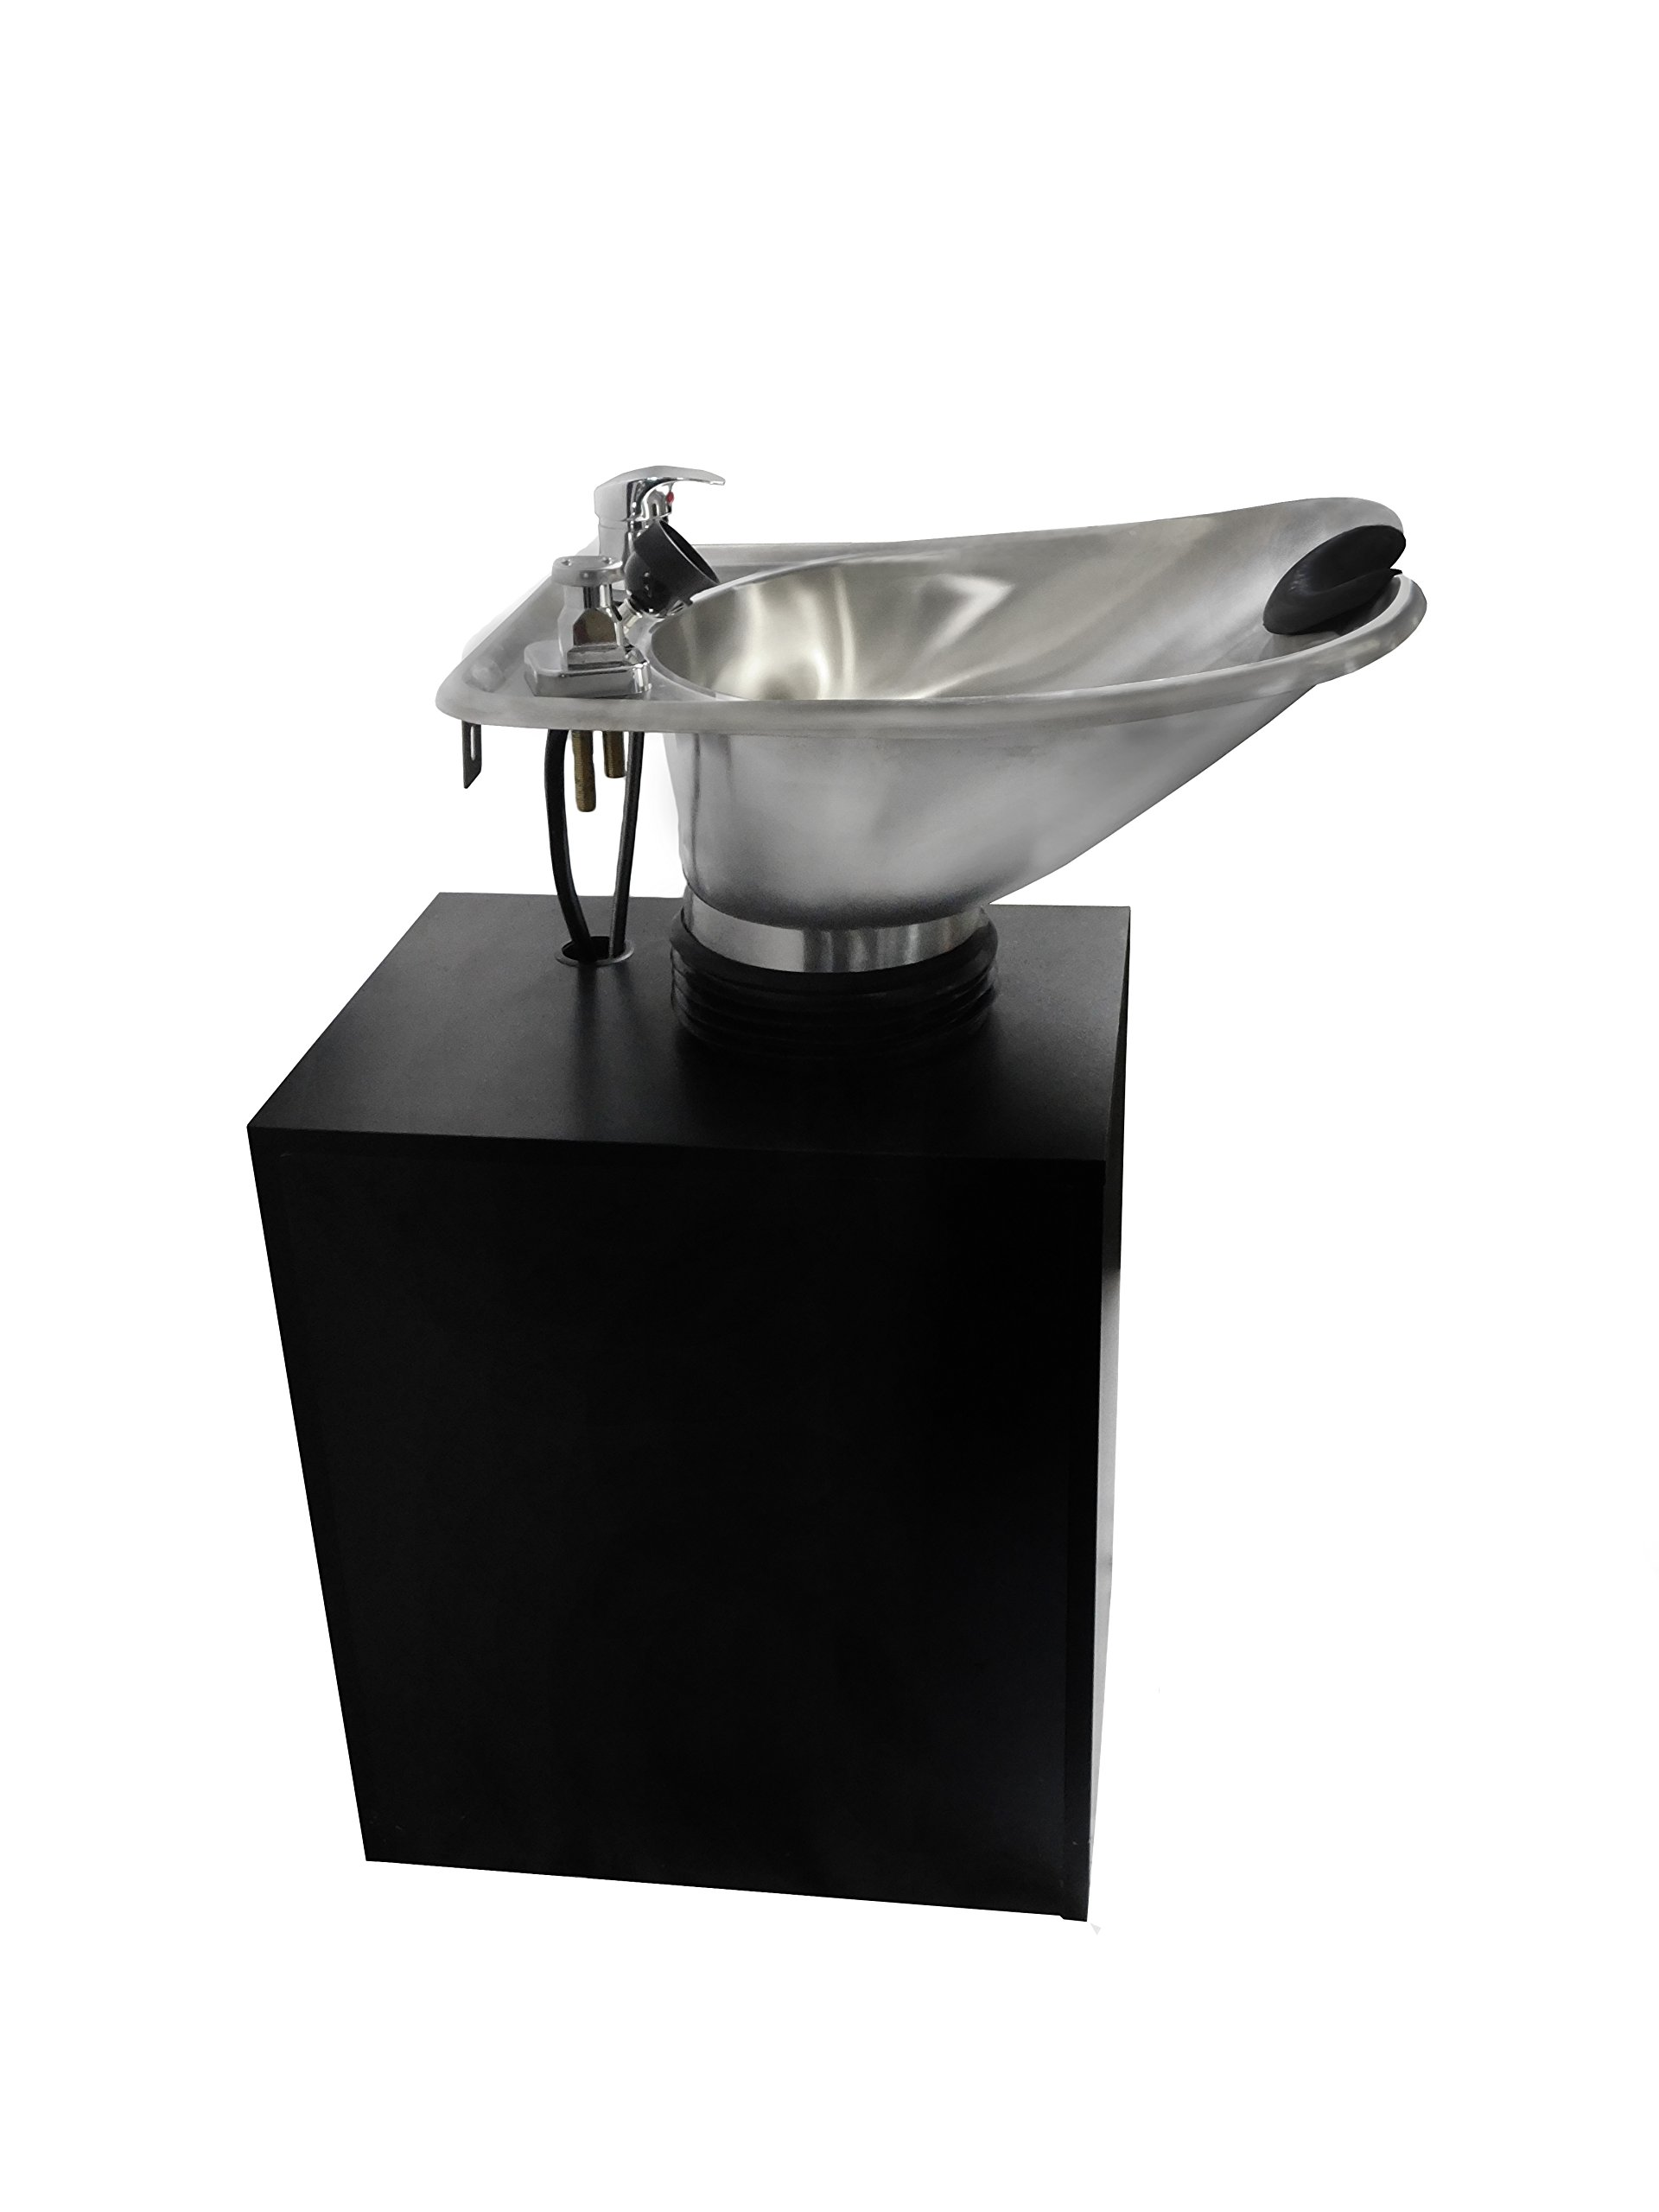 TILTING Brushed Stainless Steel Salon Shampoo Bowl with Black Cabinet Spa Equipment TLC-1567Tilt-C by eMark Beauty (Image #4)